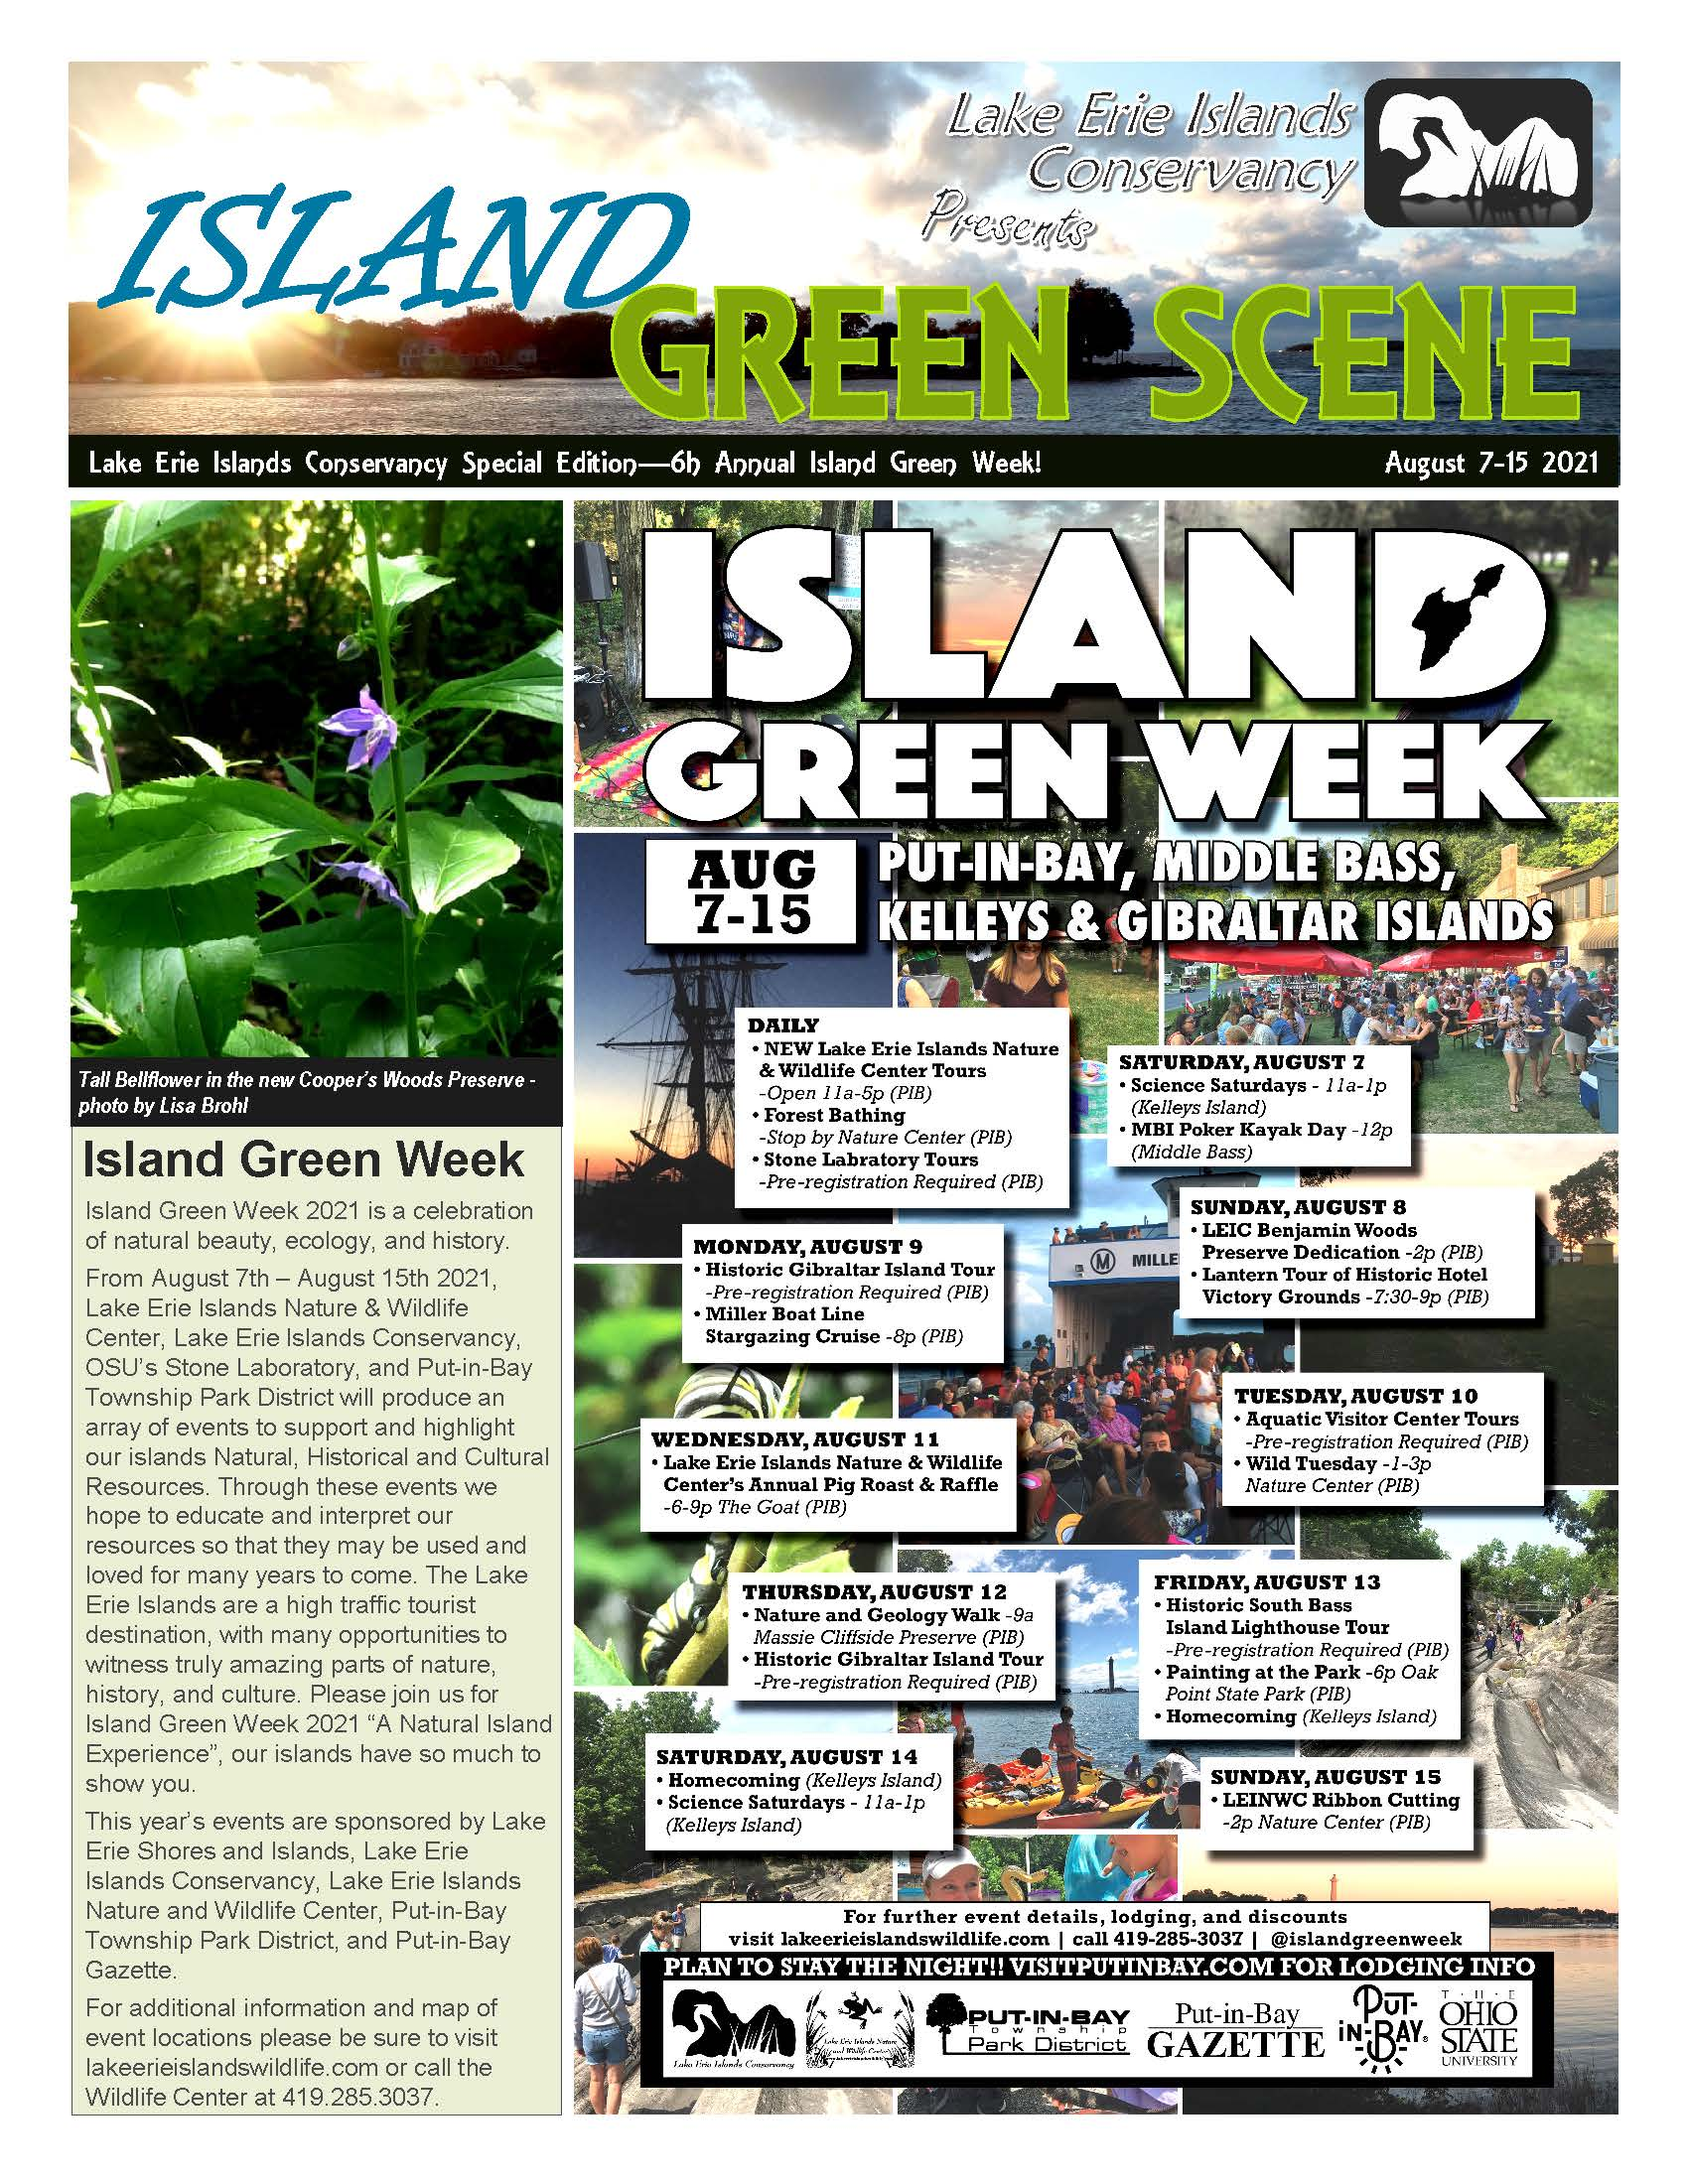 2021 LEIC Newsletter Special Edition - Island Green Week Flyer Version (1)_Page_1